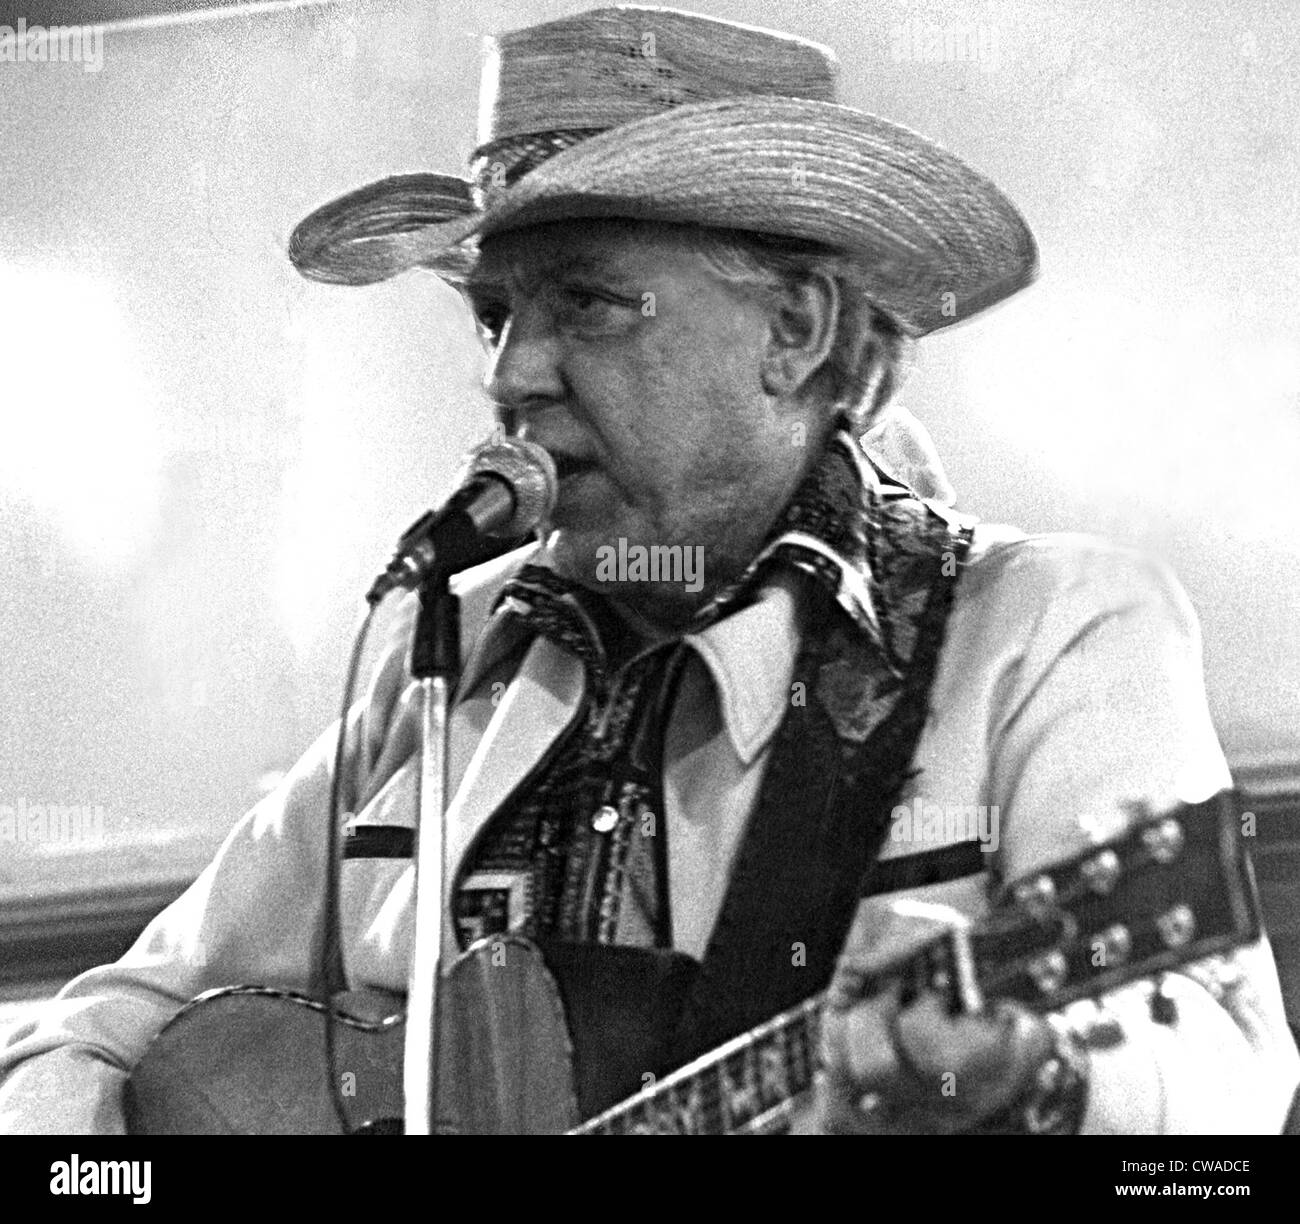 Country western singer DAVE DUDLEY performing live, c. late 1970s. Courtesy: CSU Archives / Everett Collection - Stock Image